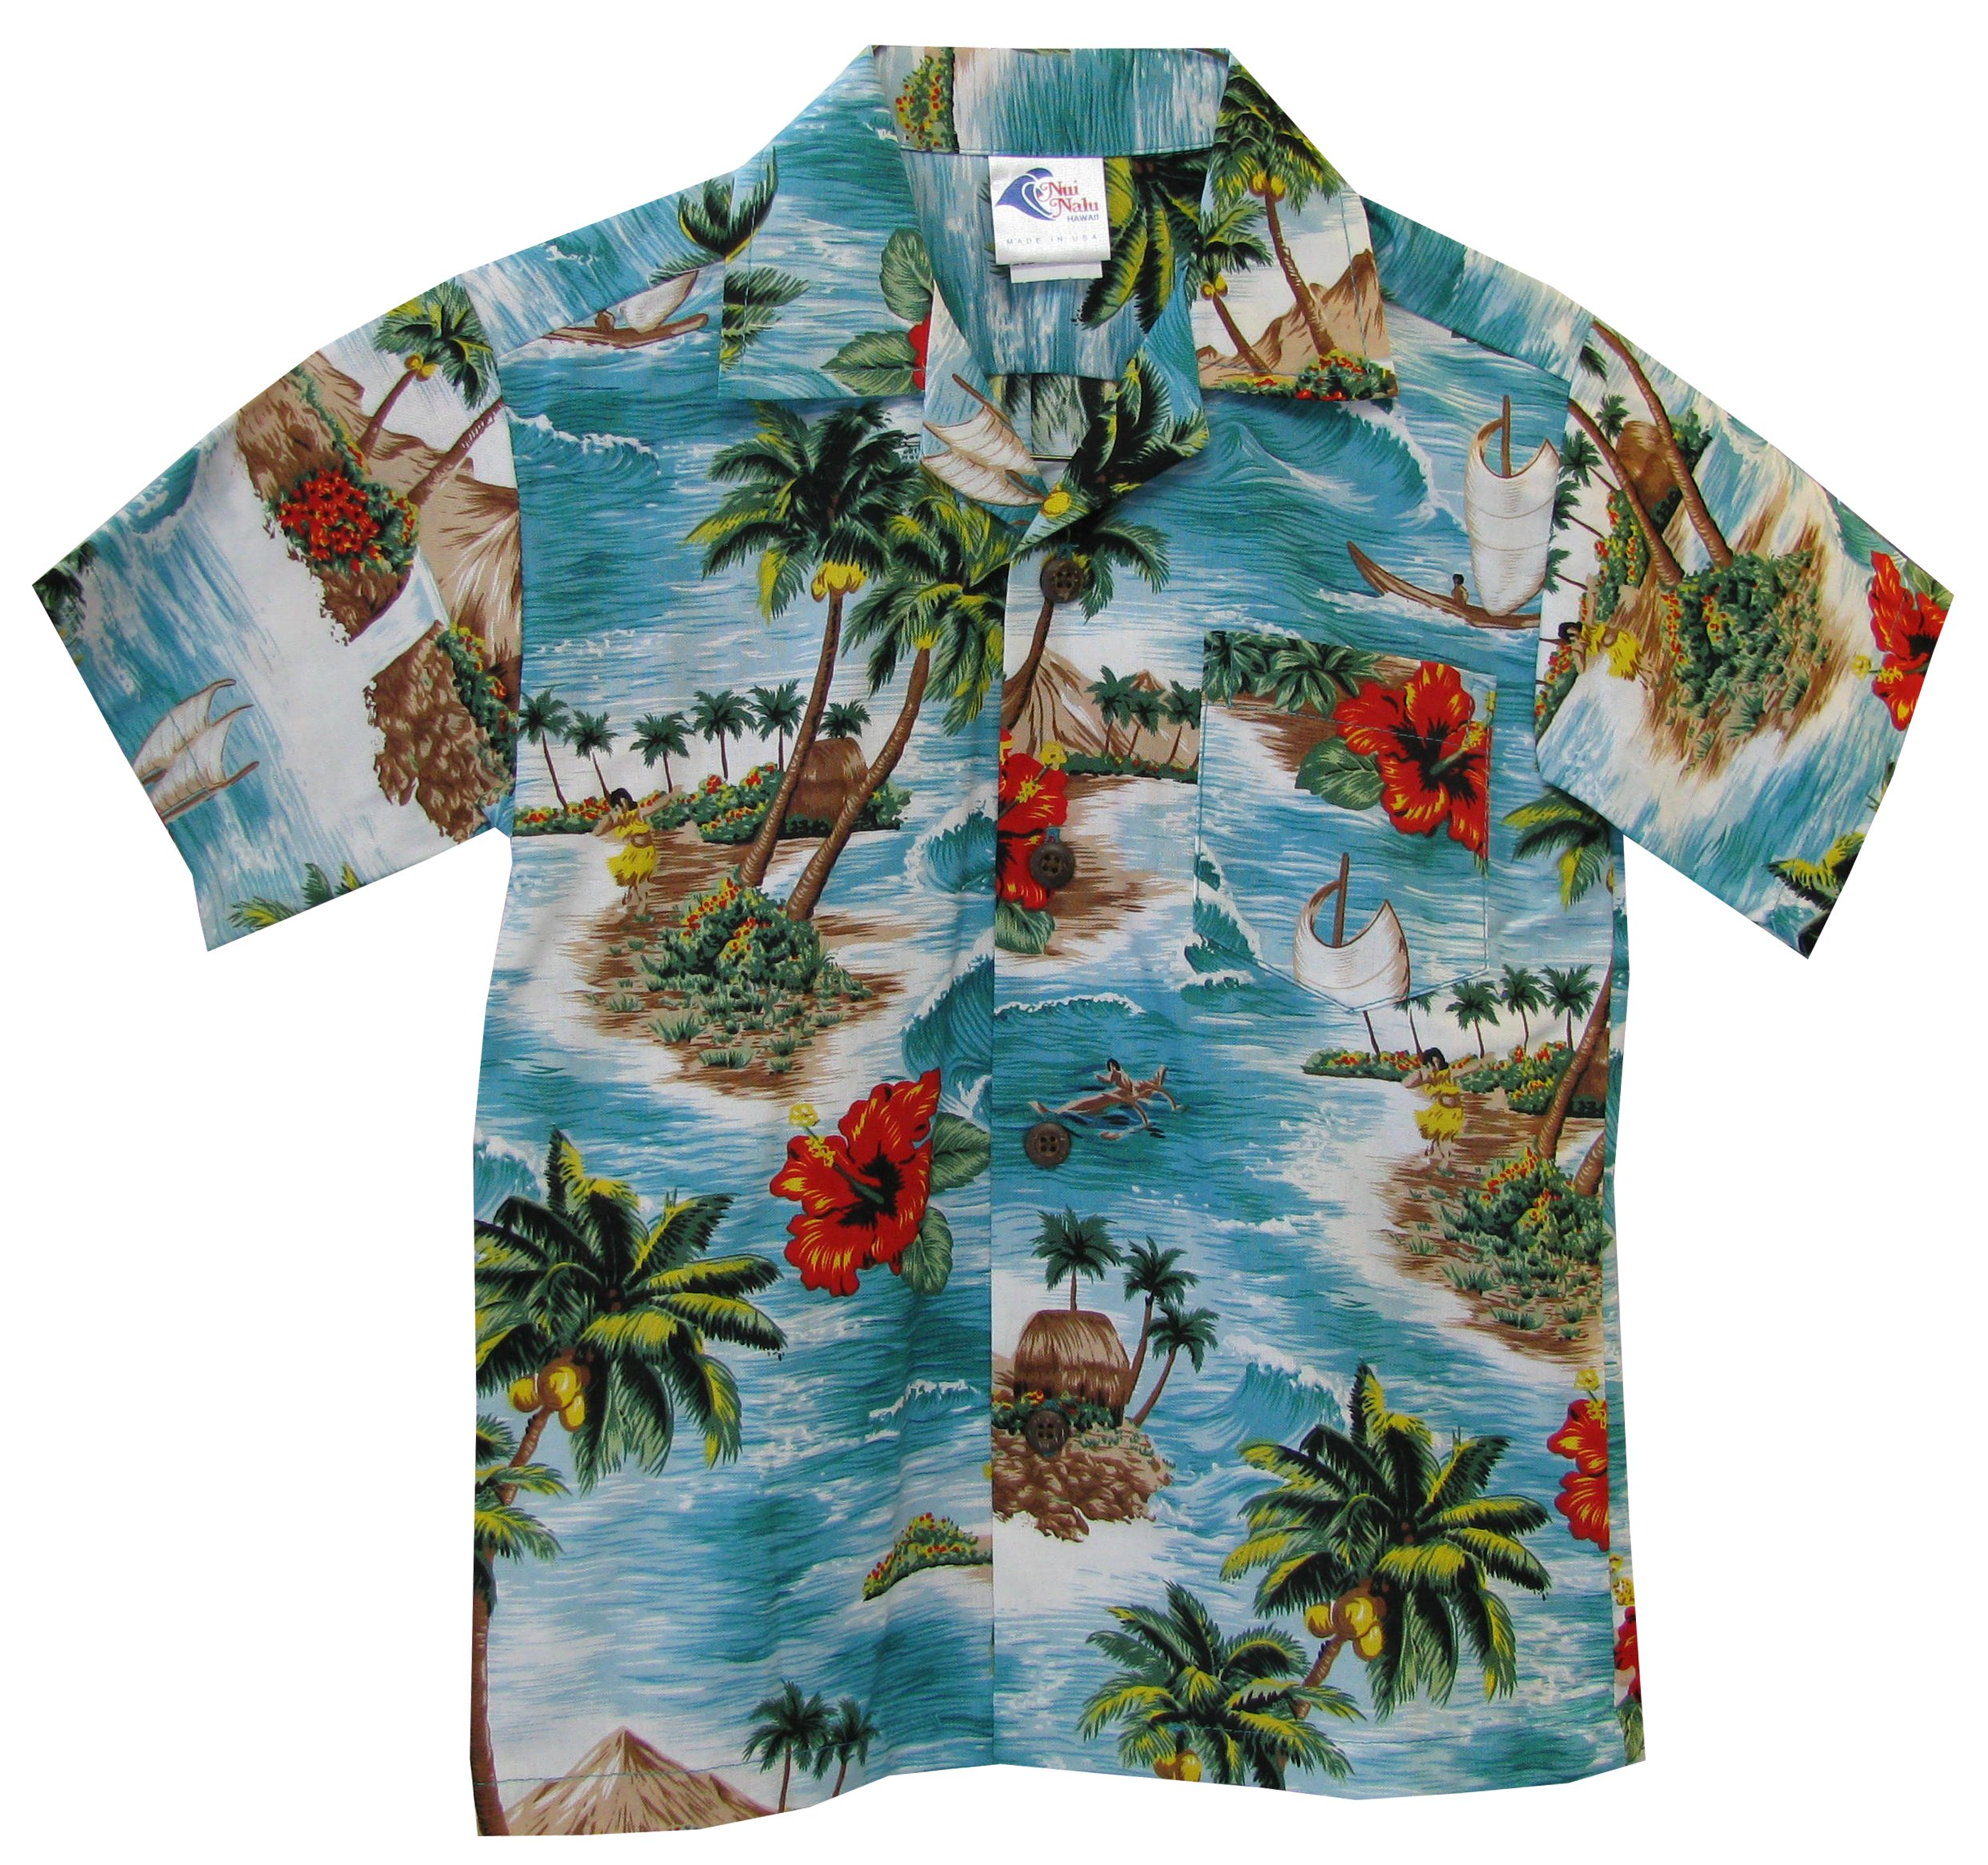 RJC Boys Red Hibiscus island Shirt in Teal - 18